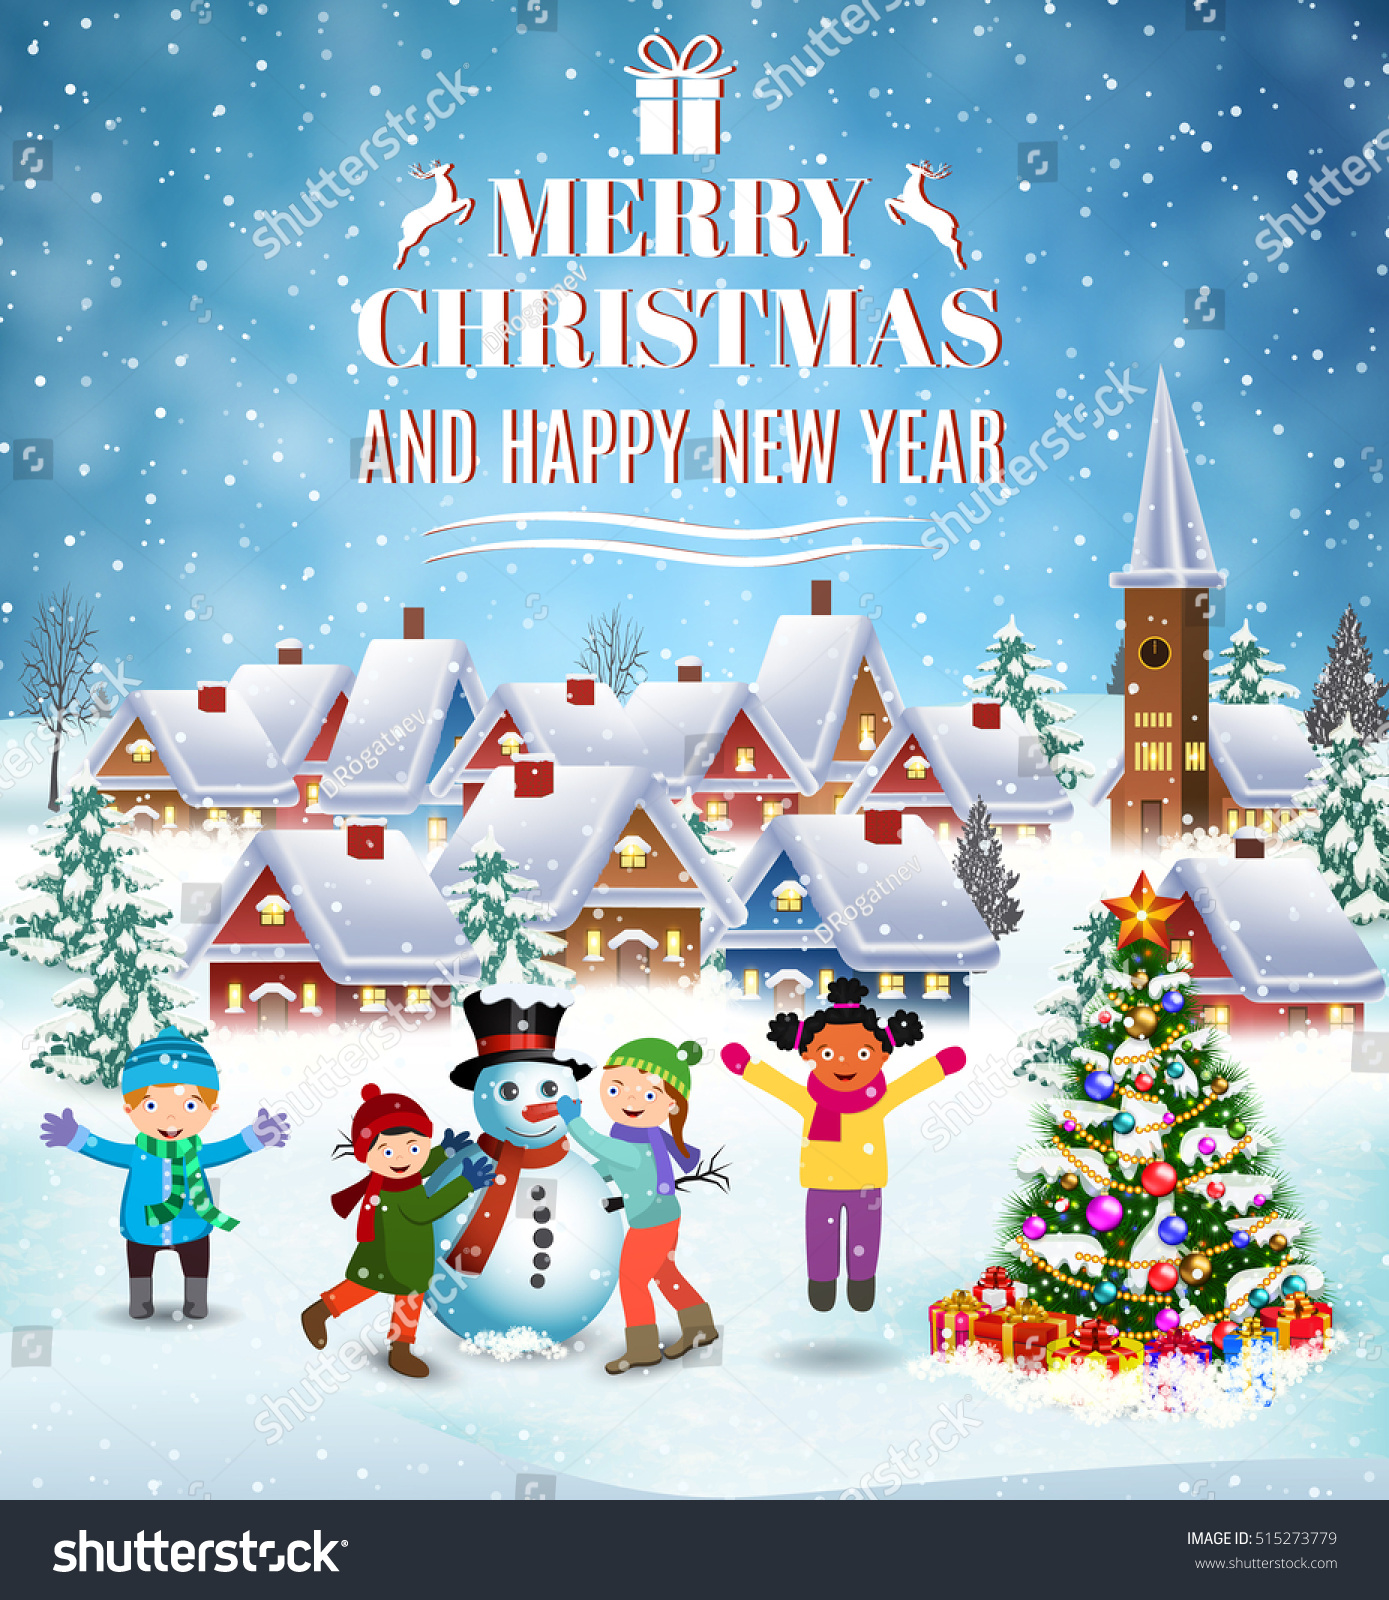 Happy New Year Merry Christmas Greeting Stock Vector Royalty Free